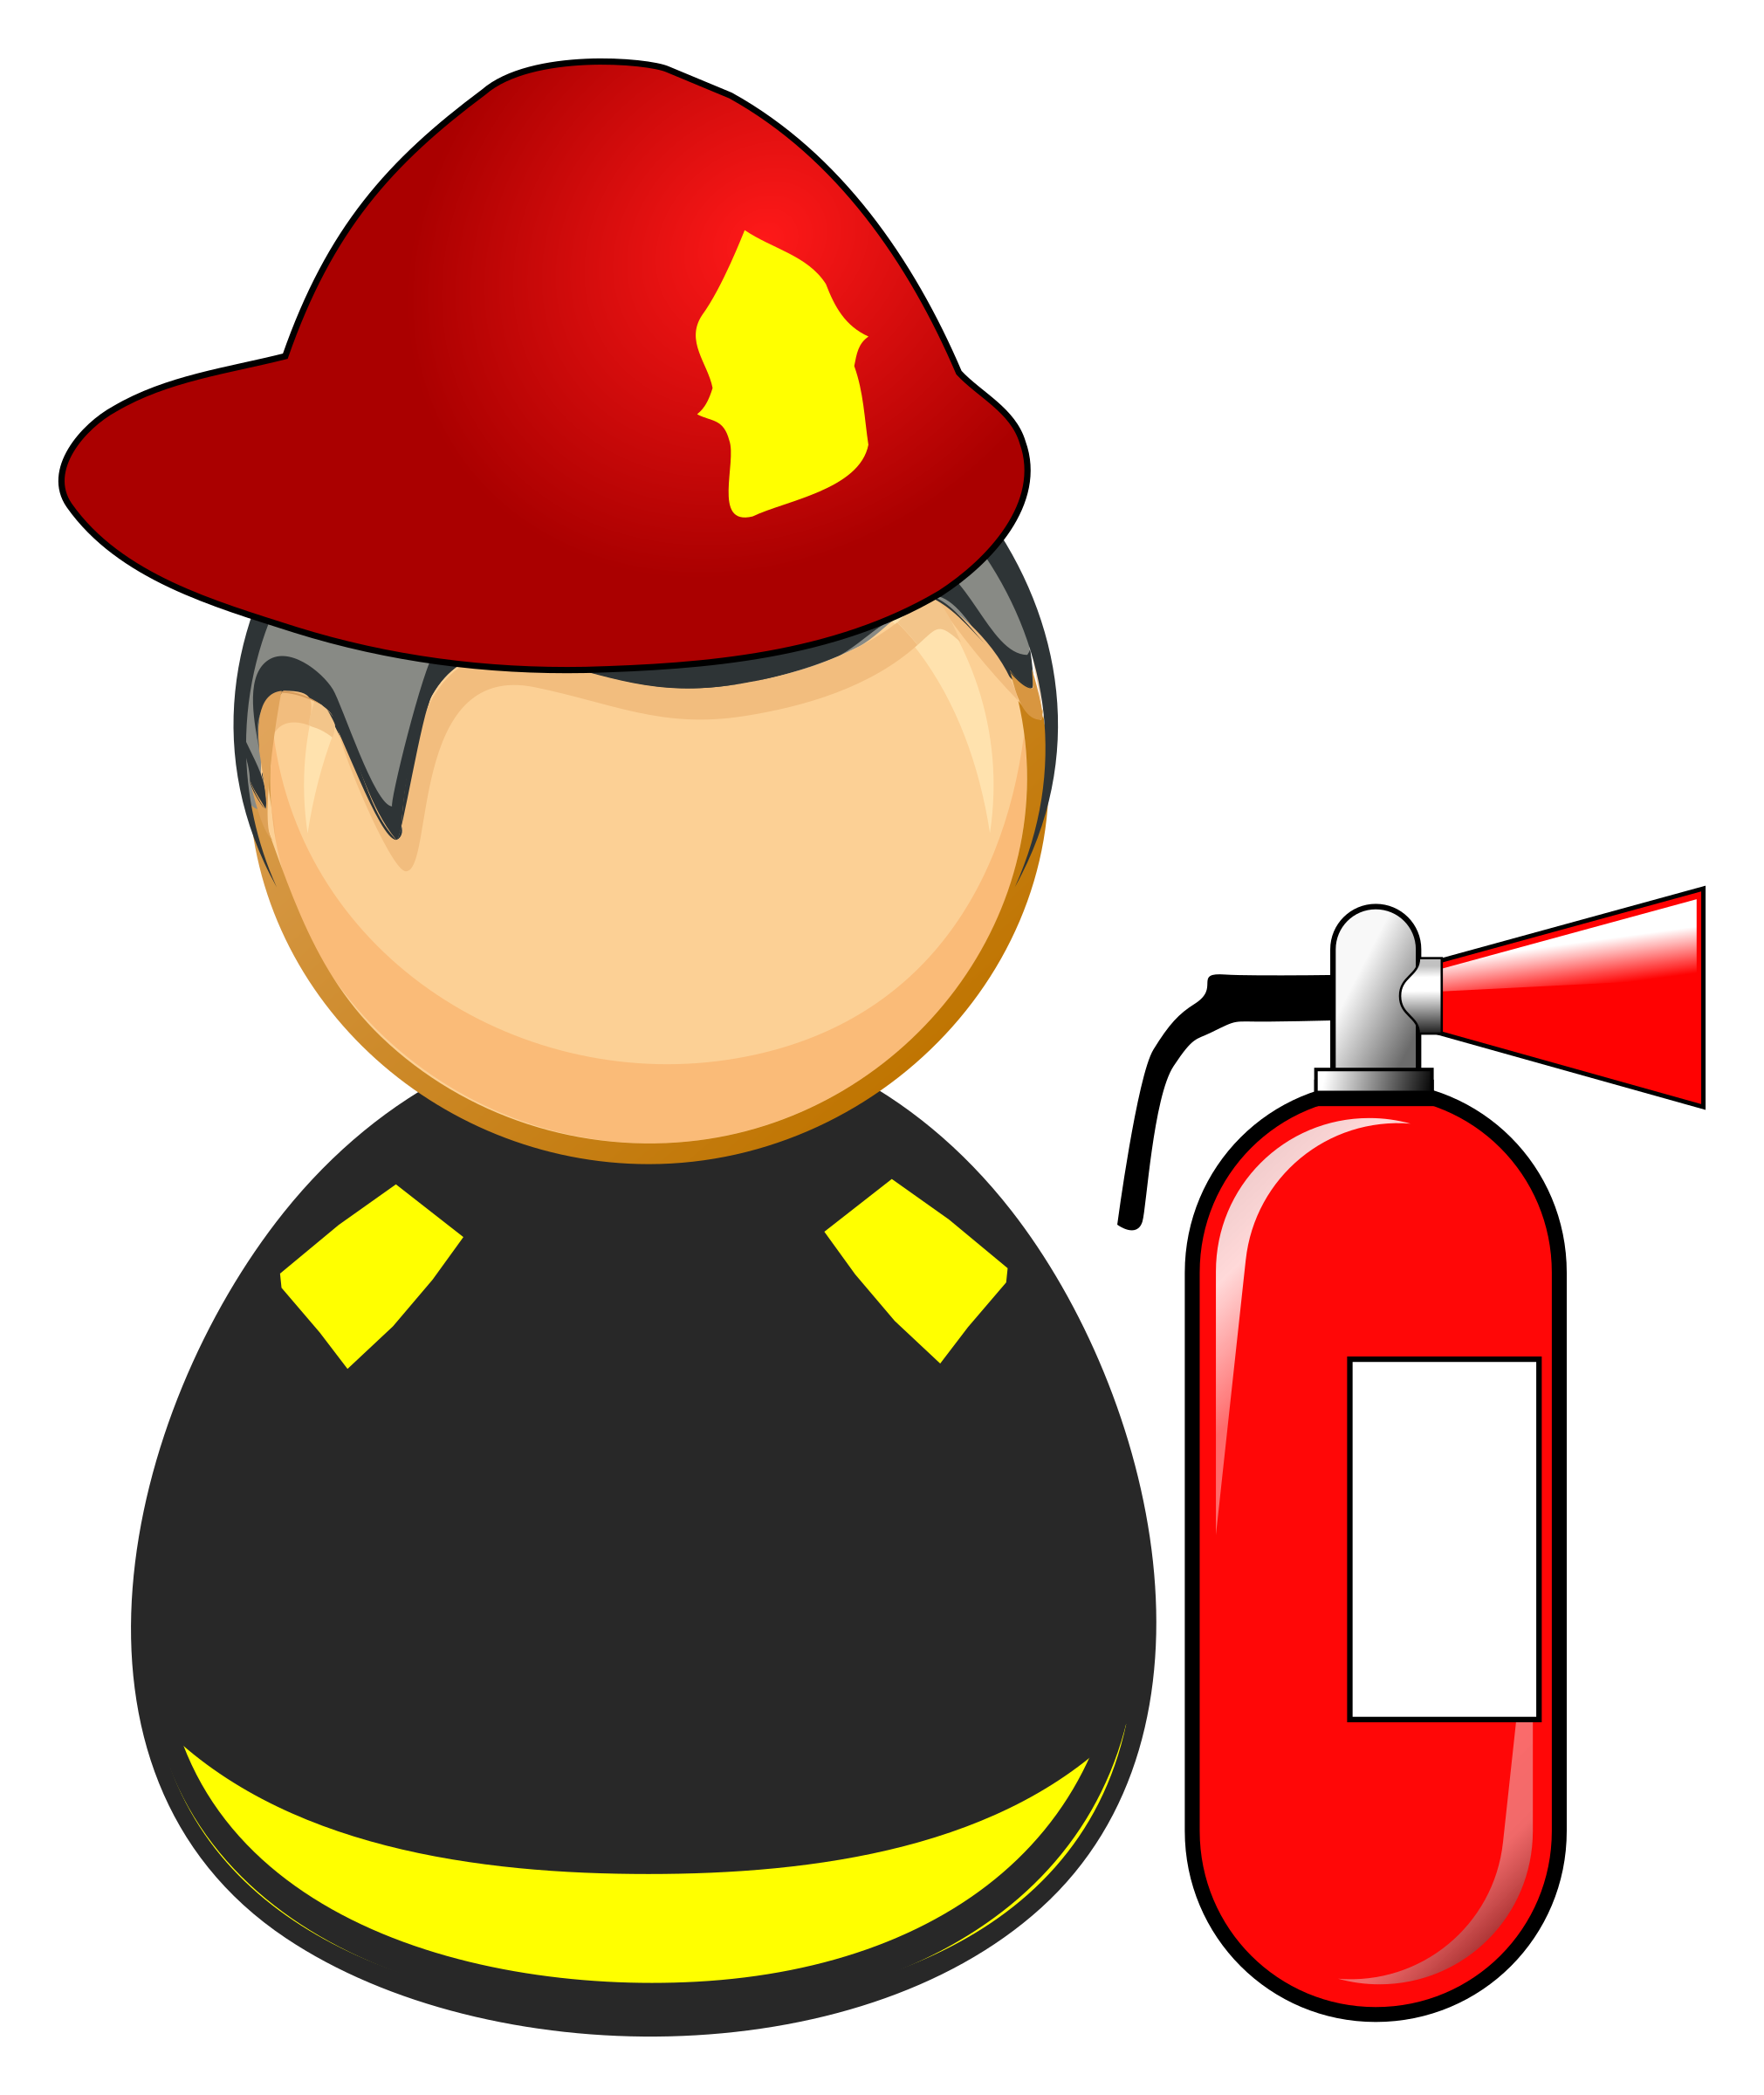 First responder - firefighter by Juhele